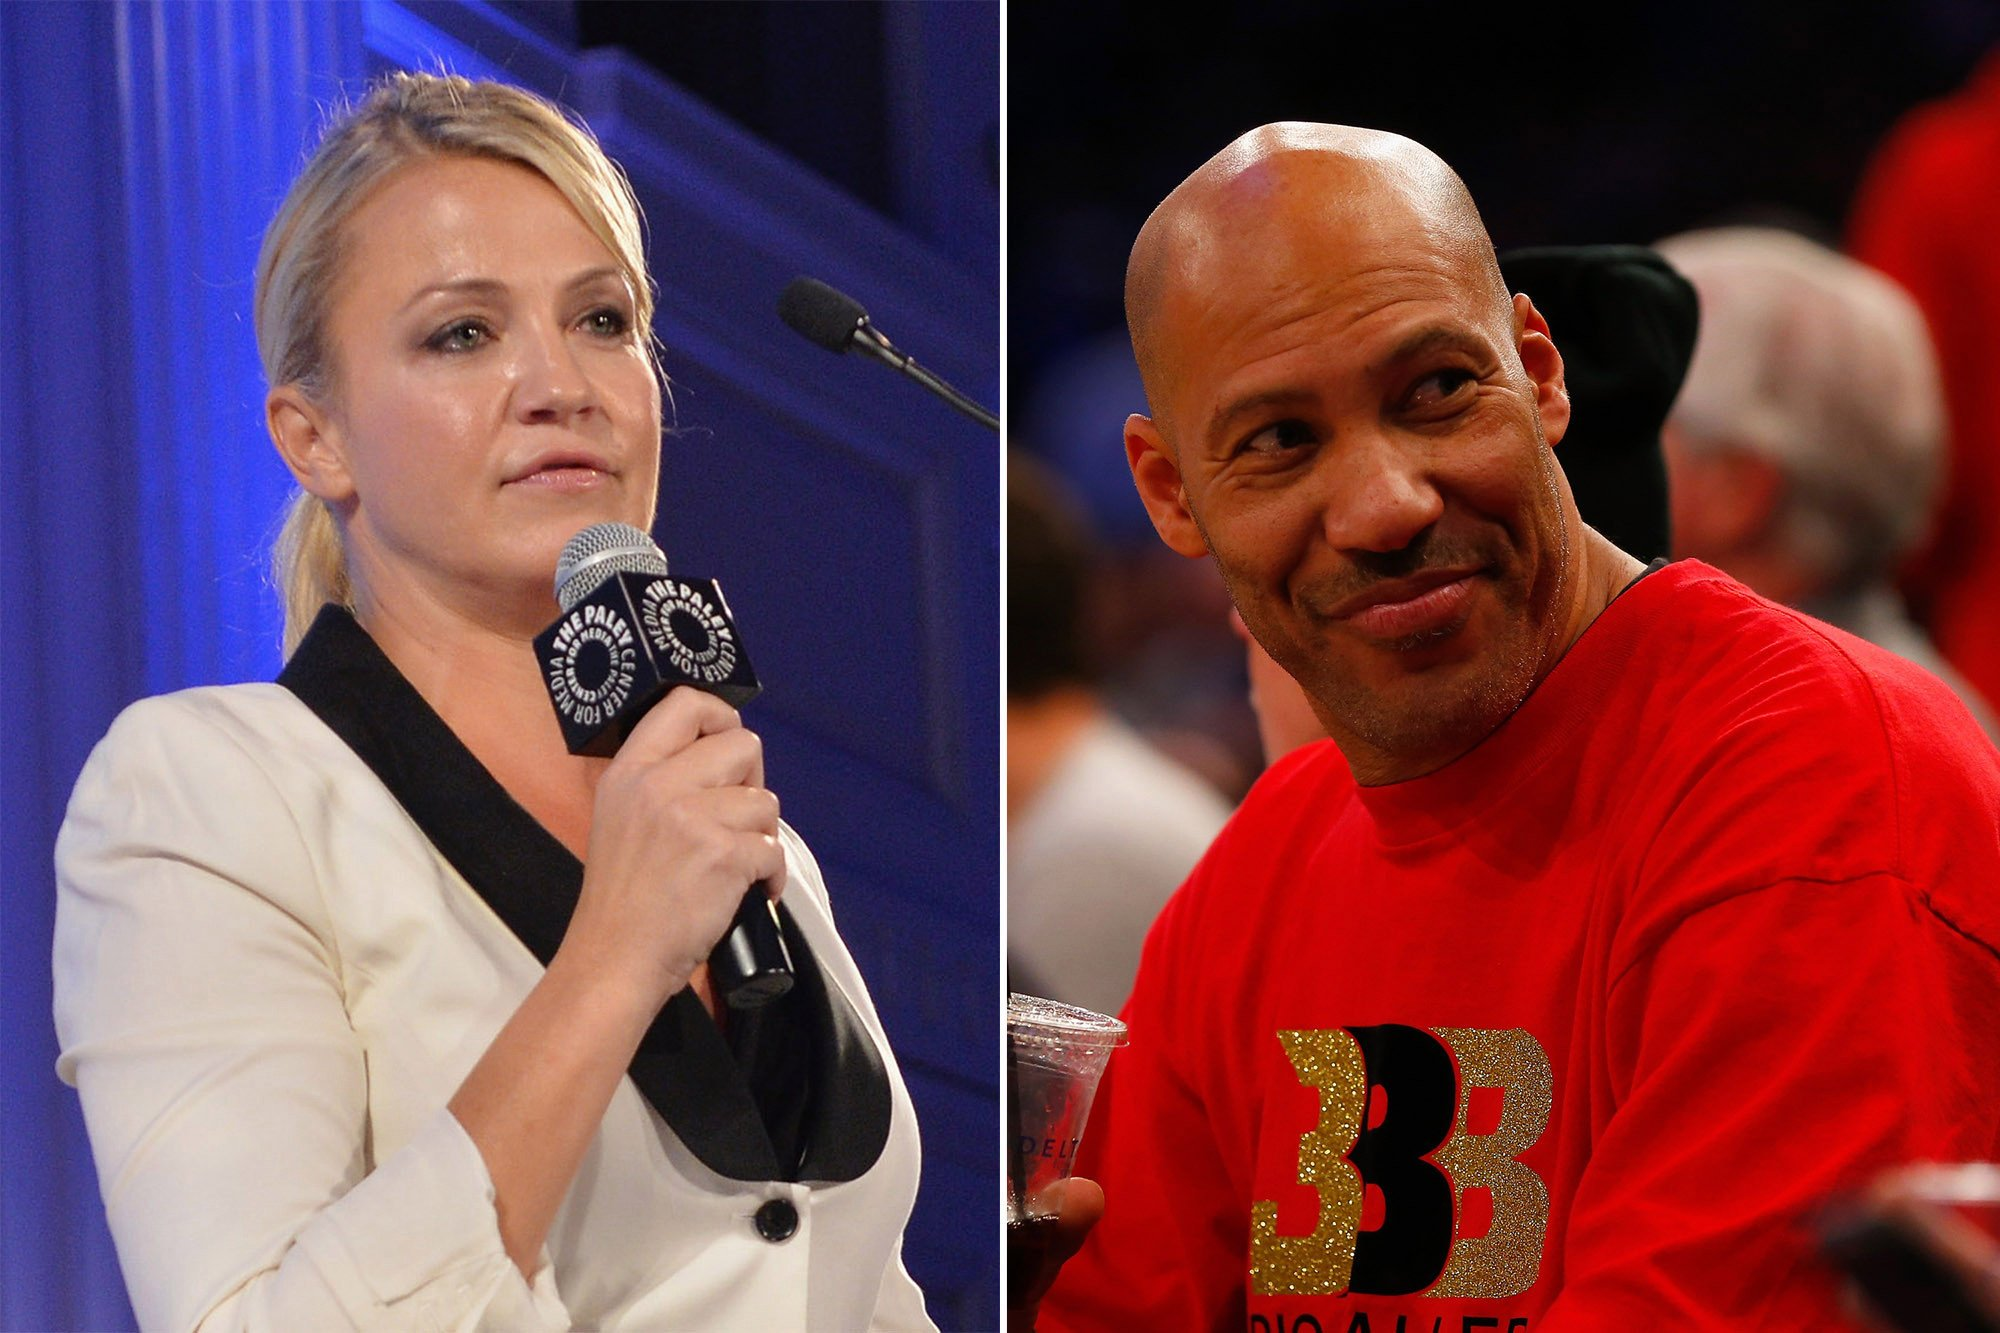 Michelle Beadle tries to draw a line with ESPN's LaVar Ball talk